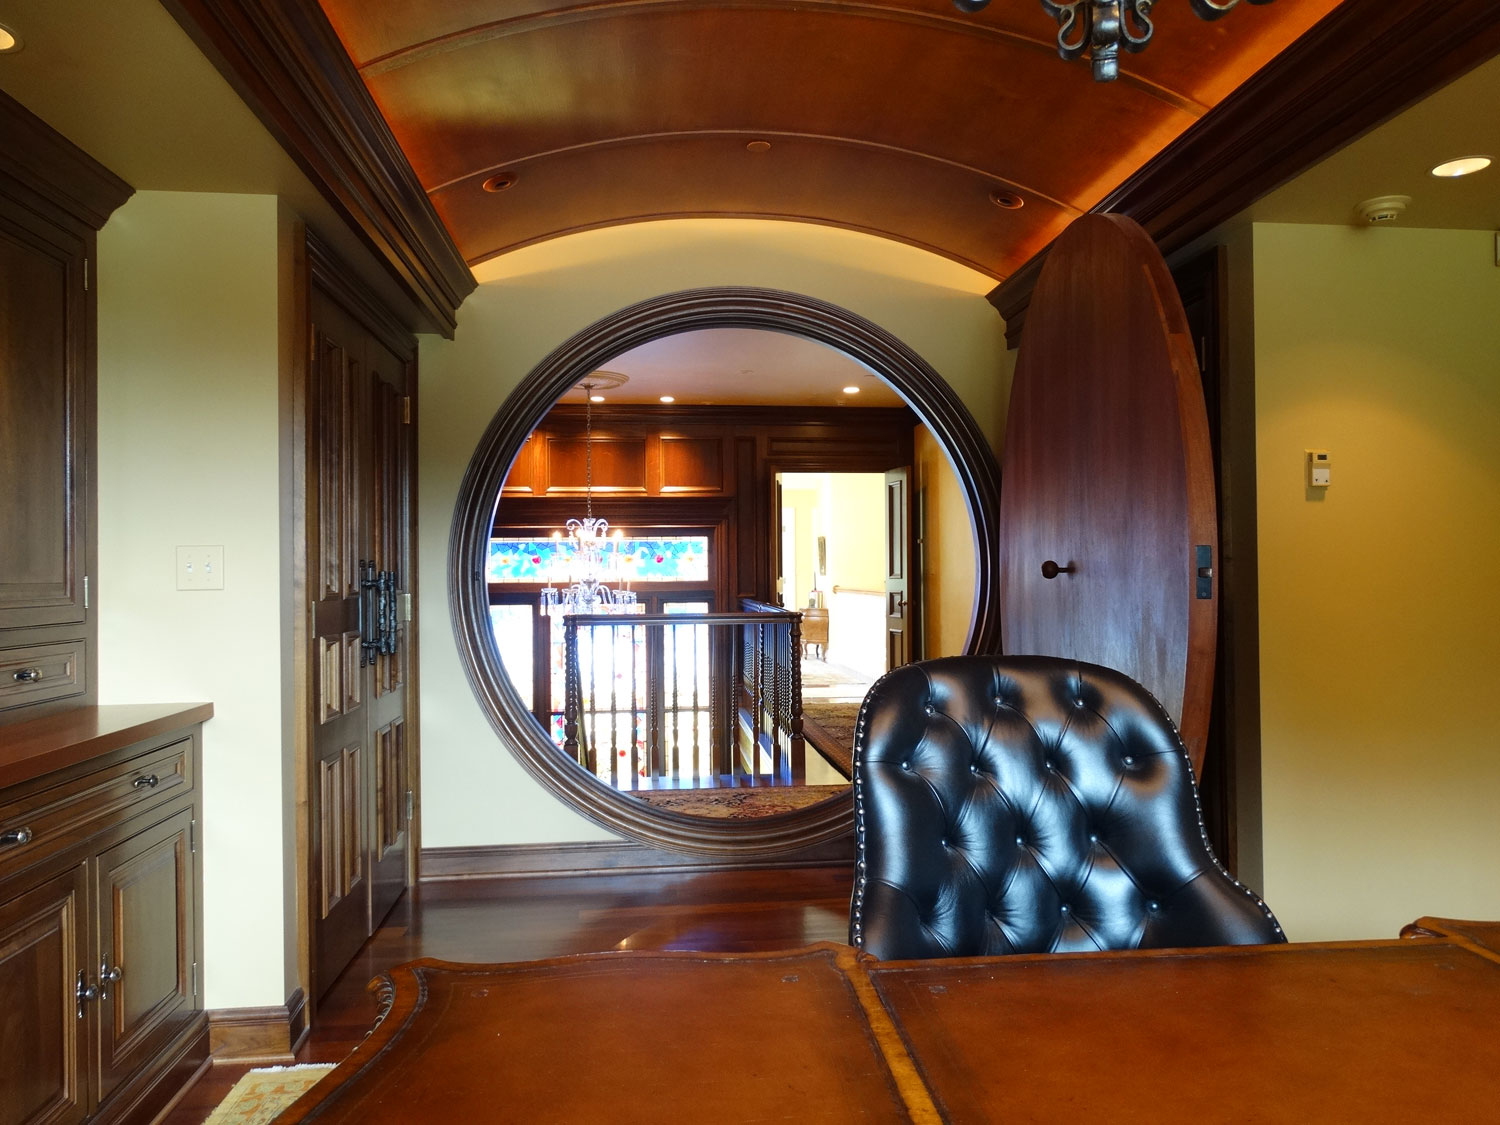 The manor house at Hidden Meadows Farm has two secret doors: an enchanting Hobbit-style doorway leading to an office and a hidden door that reveals a secret staircase descending to the wine cellar.